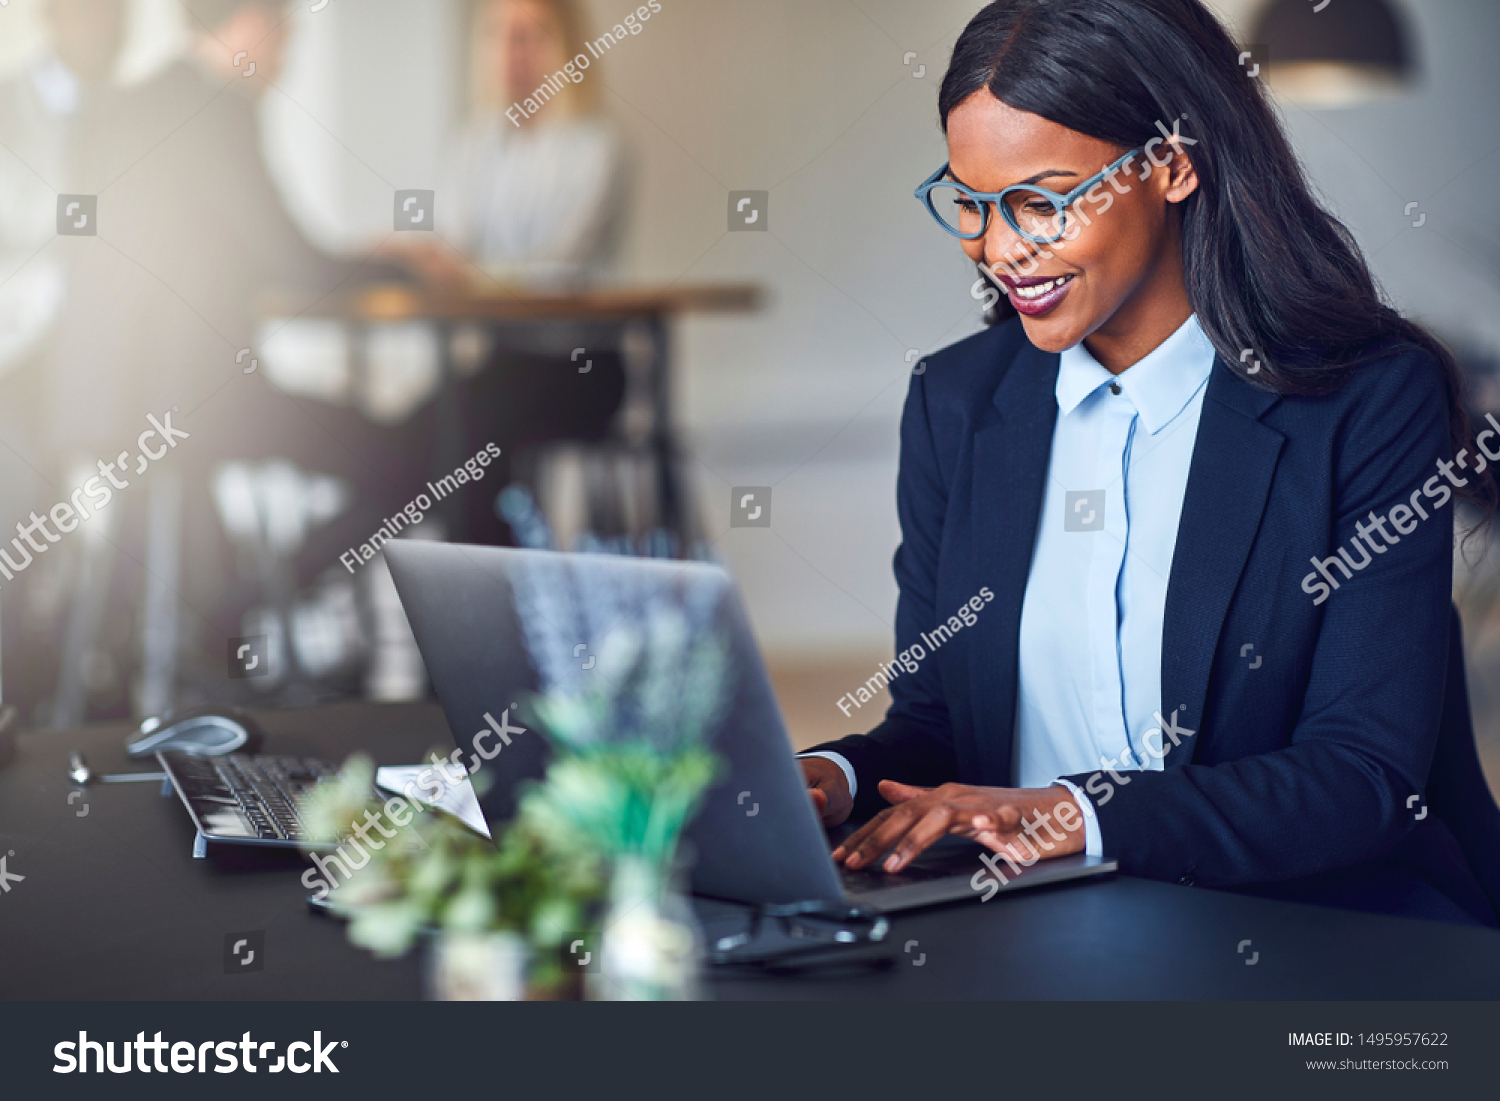 Smiling young African American businesswoman working on a laptop at her desk in a bright modern office with colleagues in the background #1495957622